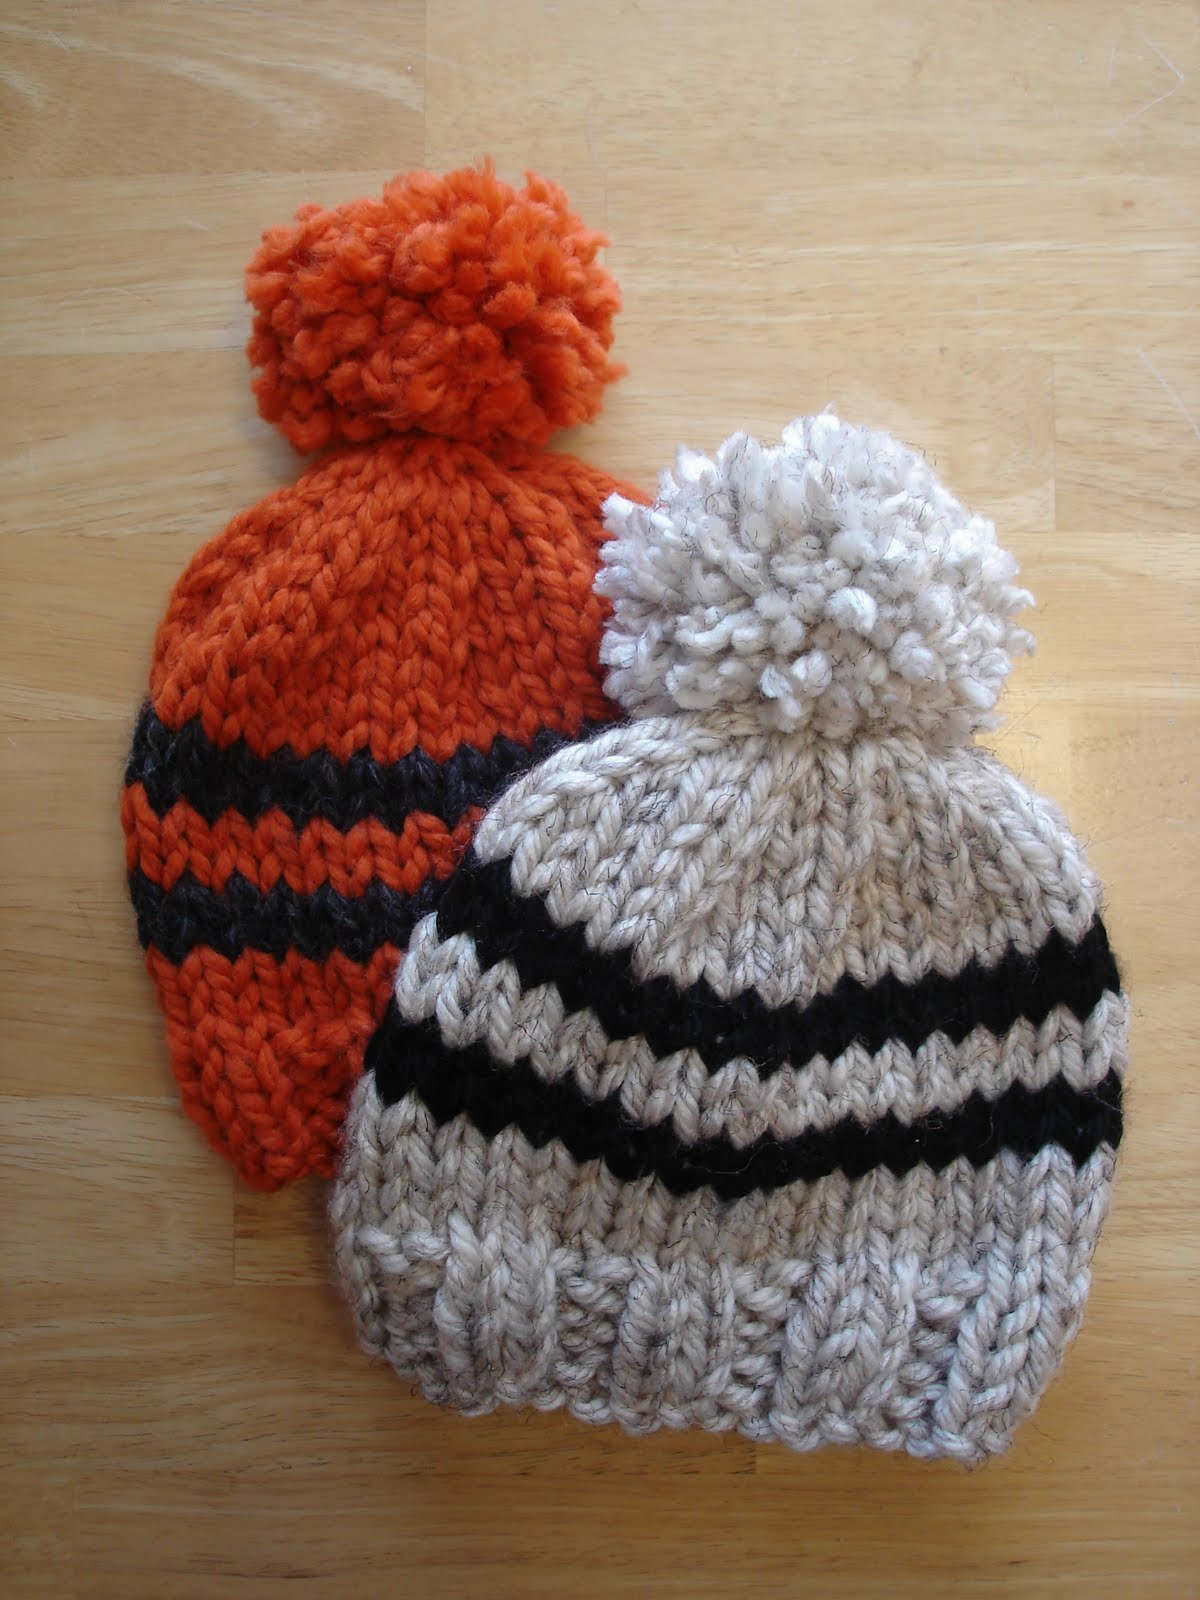 Knitting Patterns For Toddler Hats : Fiber Flux: Free Knitting Pattern! Toddler Rugby Hat...